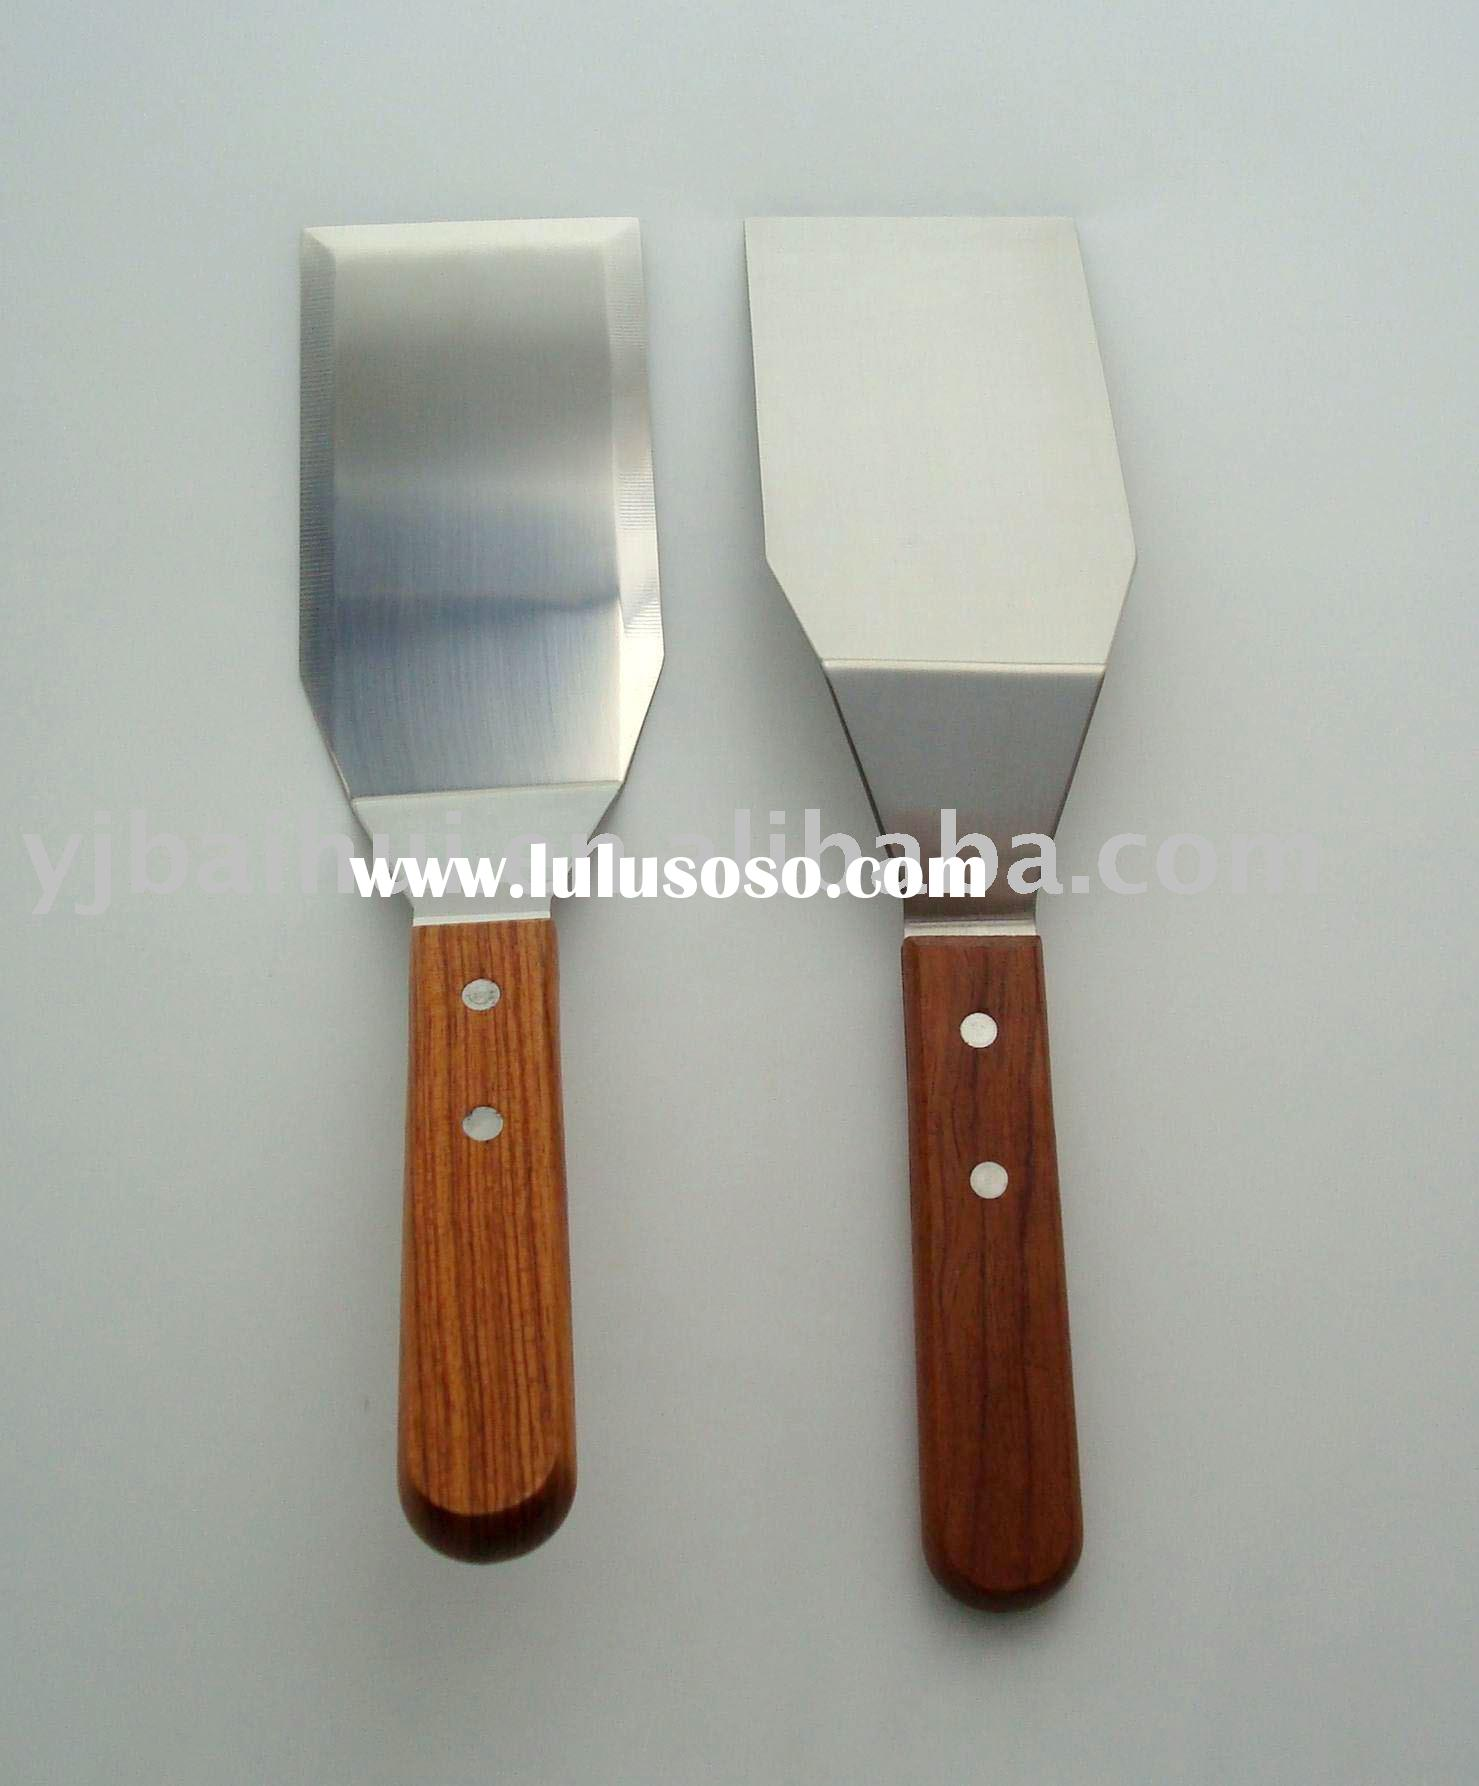 Metal Spatula With Wooden Handle Spatula With Wooden Handle